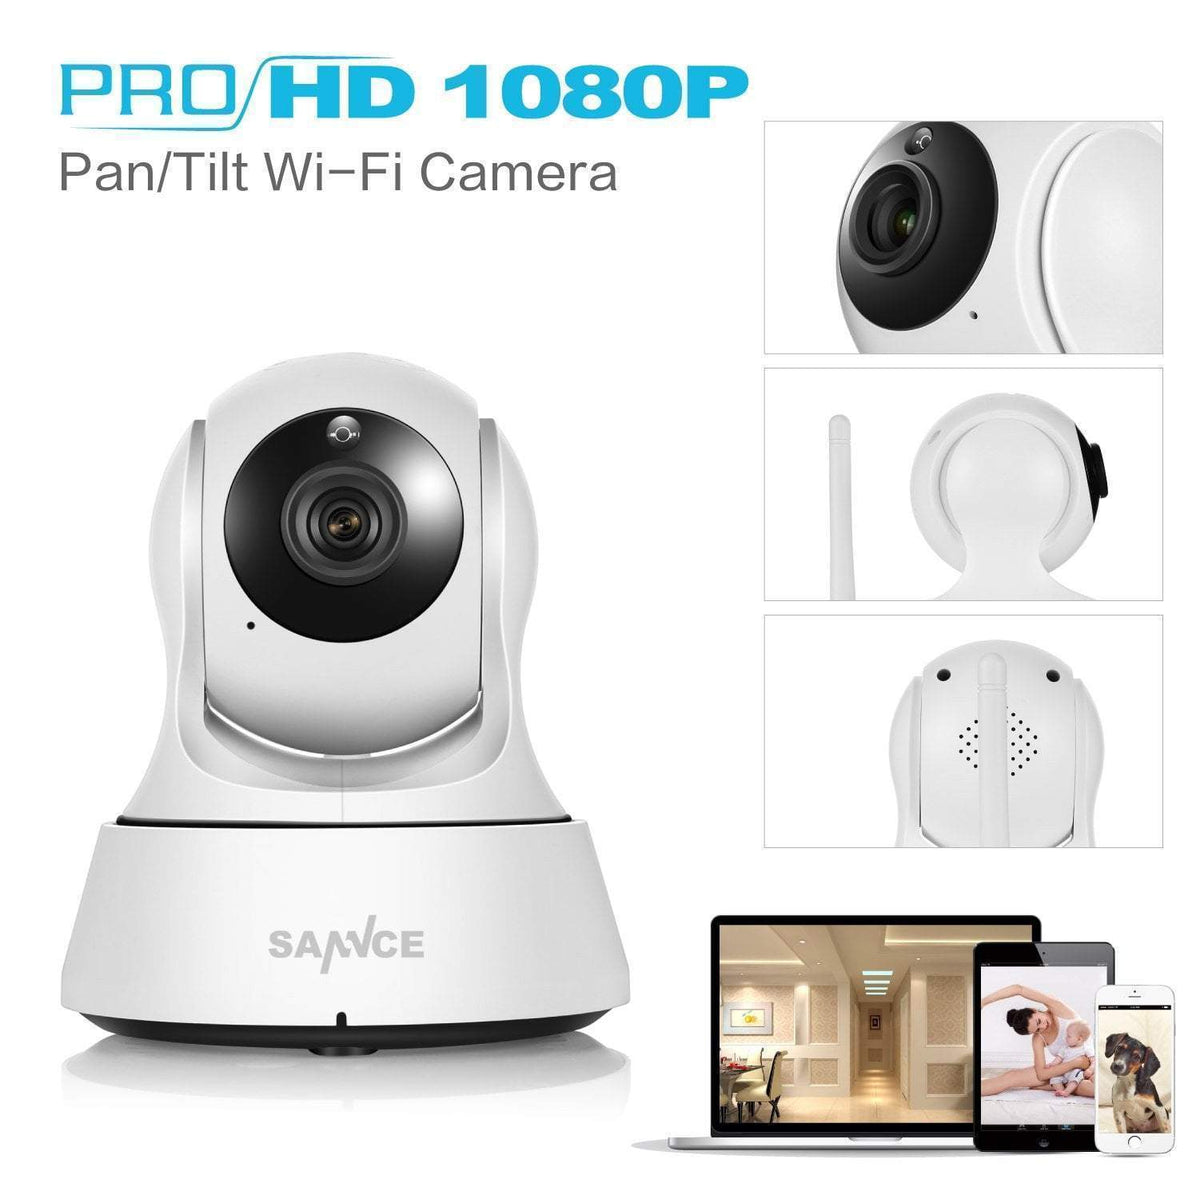 1080P HD Wireless Wi-Fi Smart Security CCTV Camera  -  With 1m Power Cable / US Plug  -  Honey Locker -  Gadget